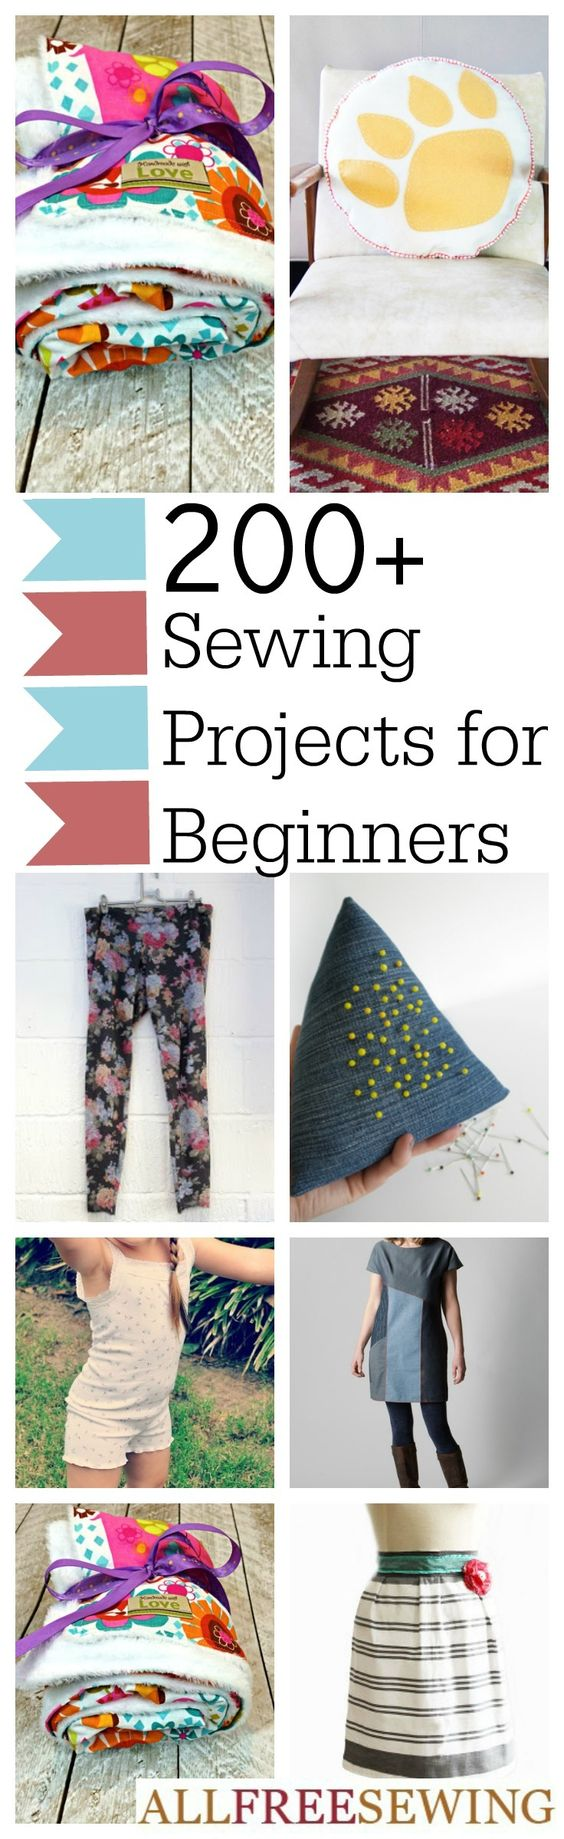 200+ DIY Sewing Projects for Beginners by the Minute | AllFreeSewing.com: